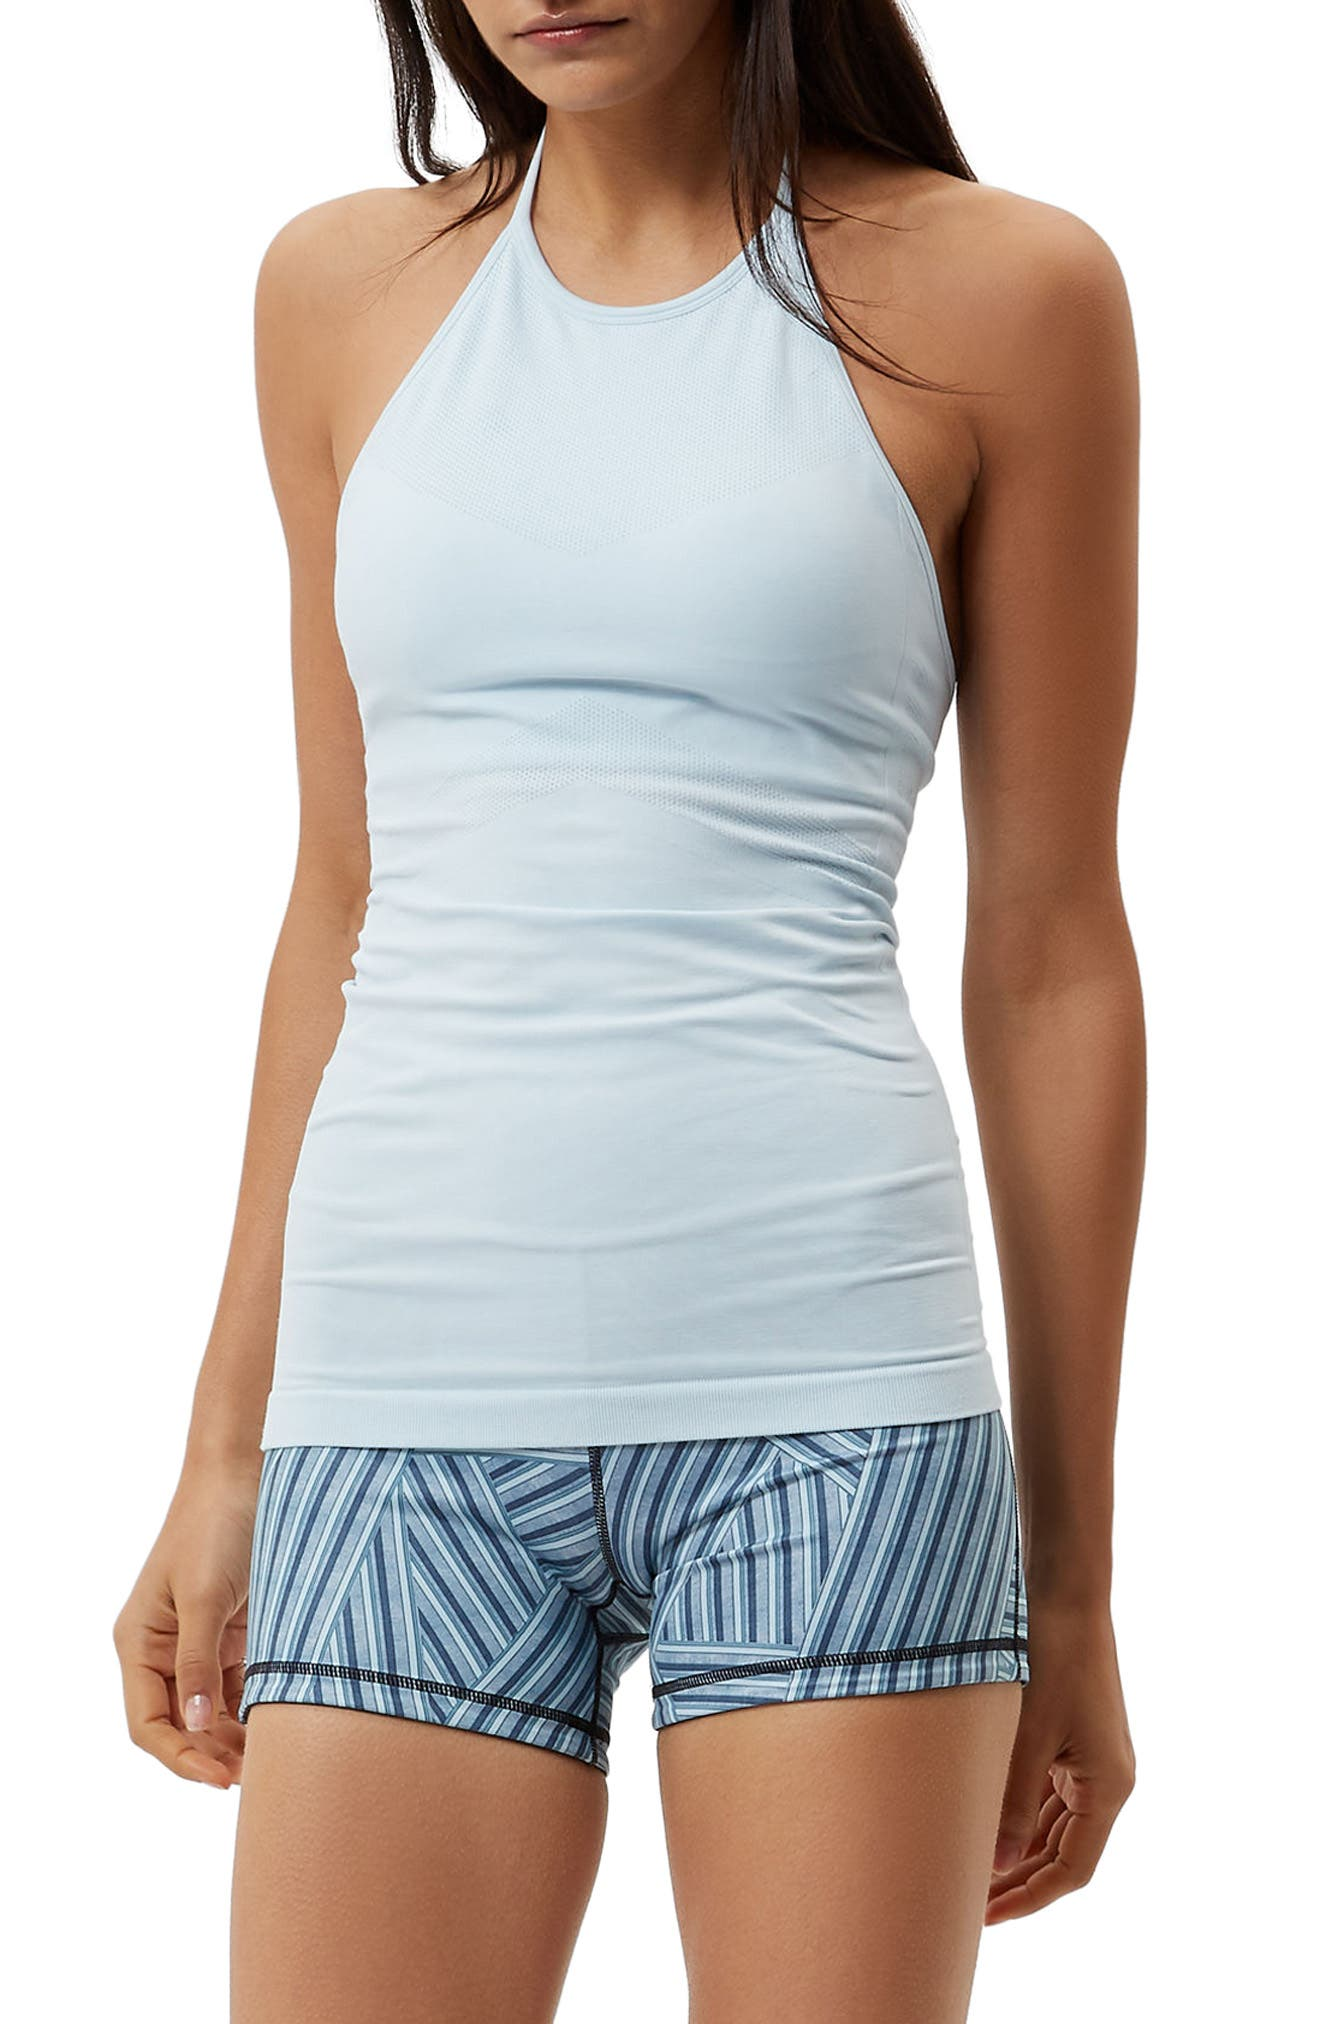 Dandasana Yoga Tank by Sweaty Betty